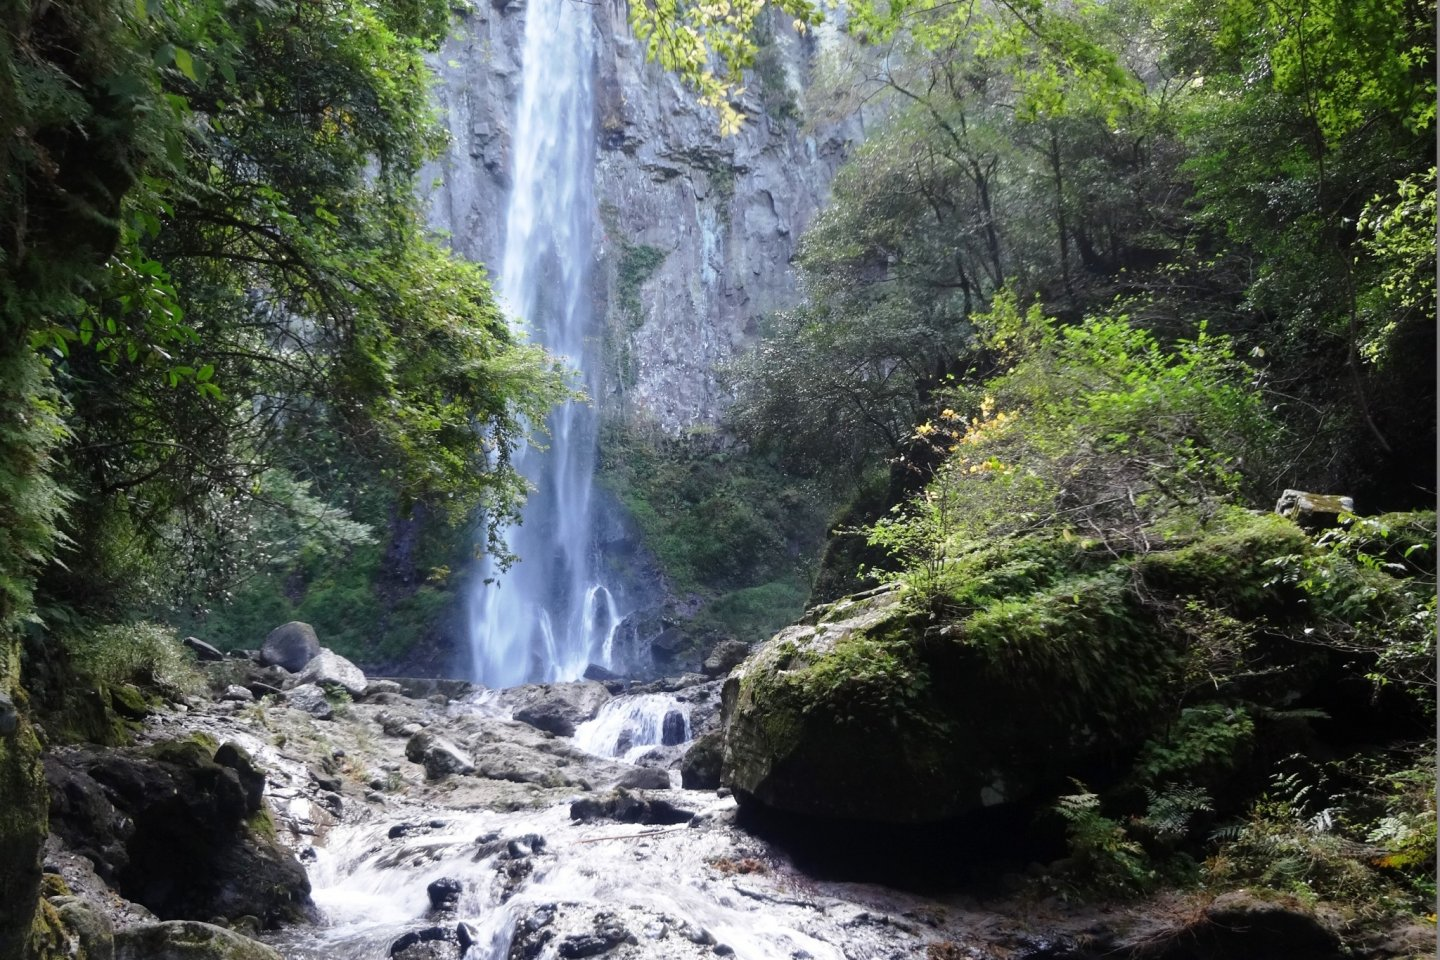 The Higashi Shiiya Waterfall thunders 85 meters from the top of the cliff to the pool below